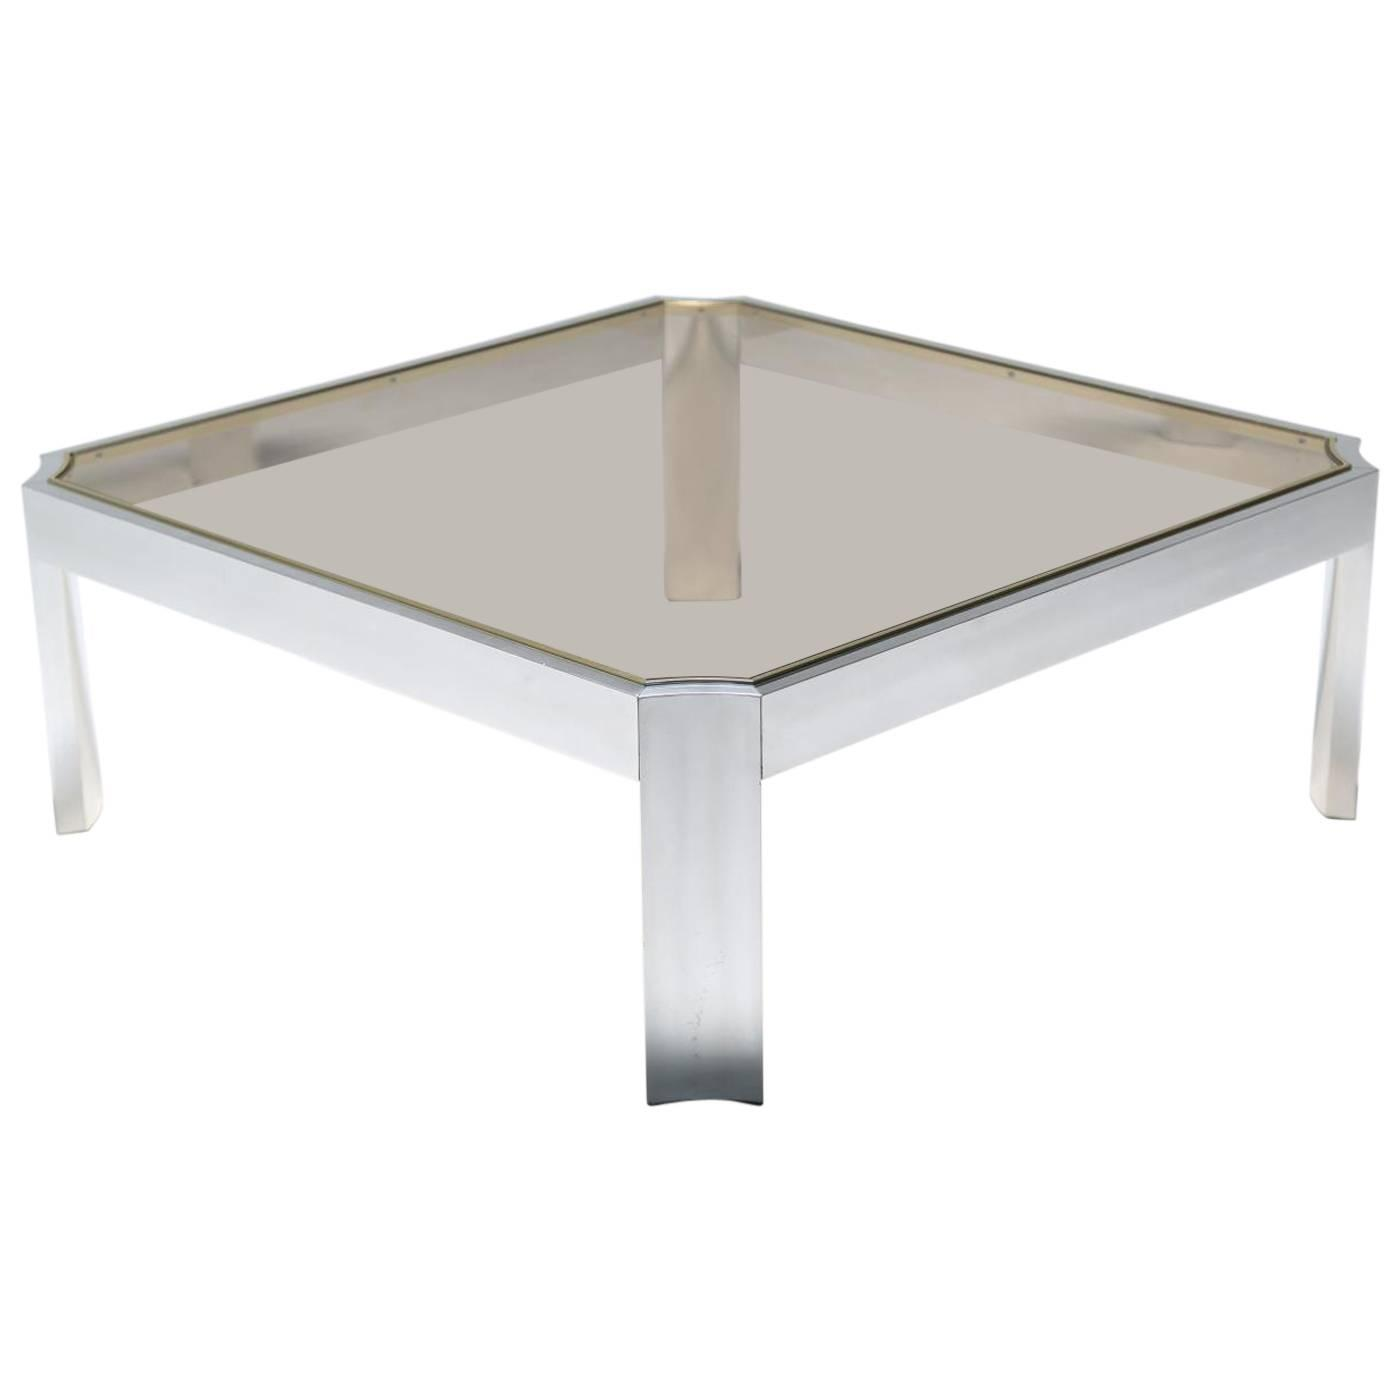 Mid century aluminum coffee table for sale at 1stdibs geotapseo Gallery